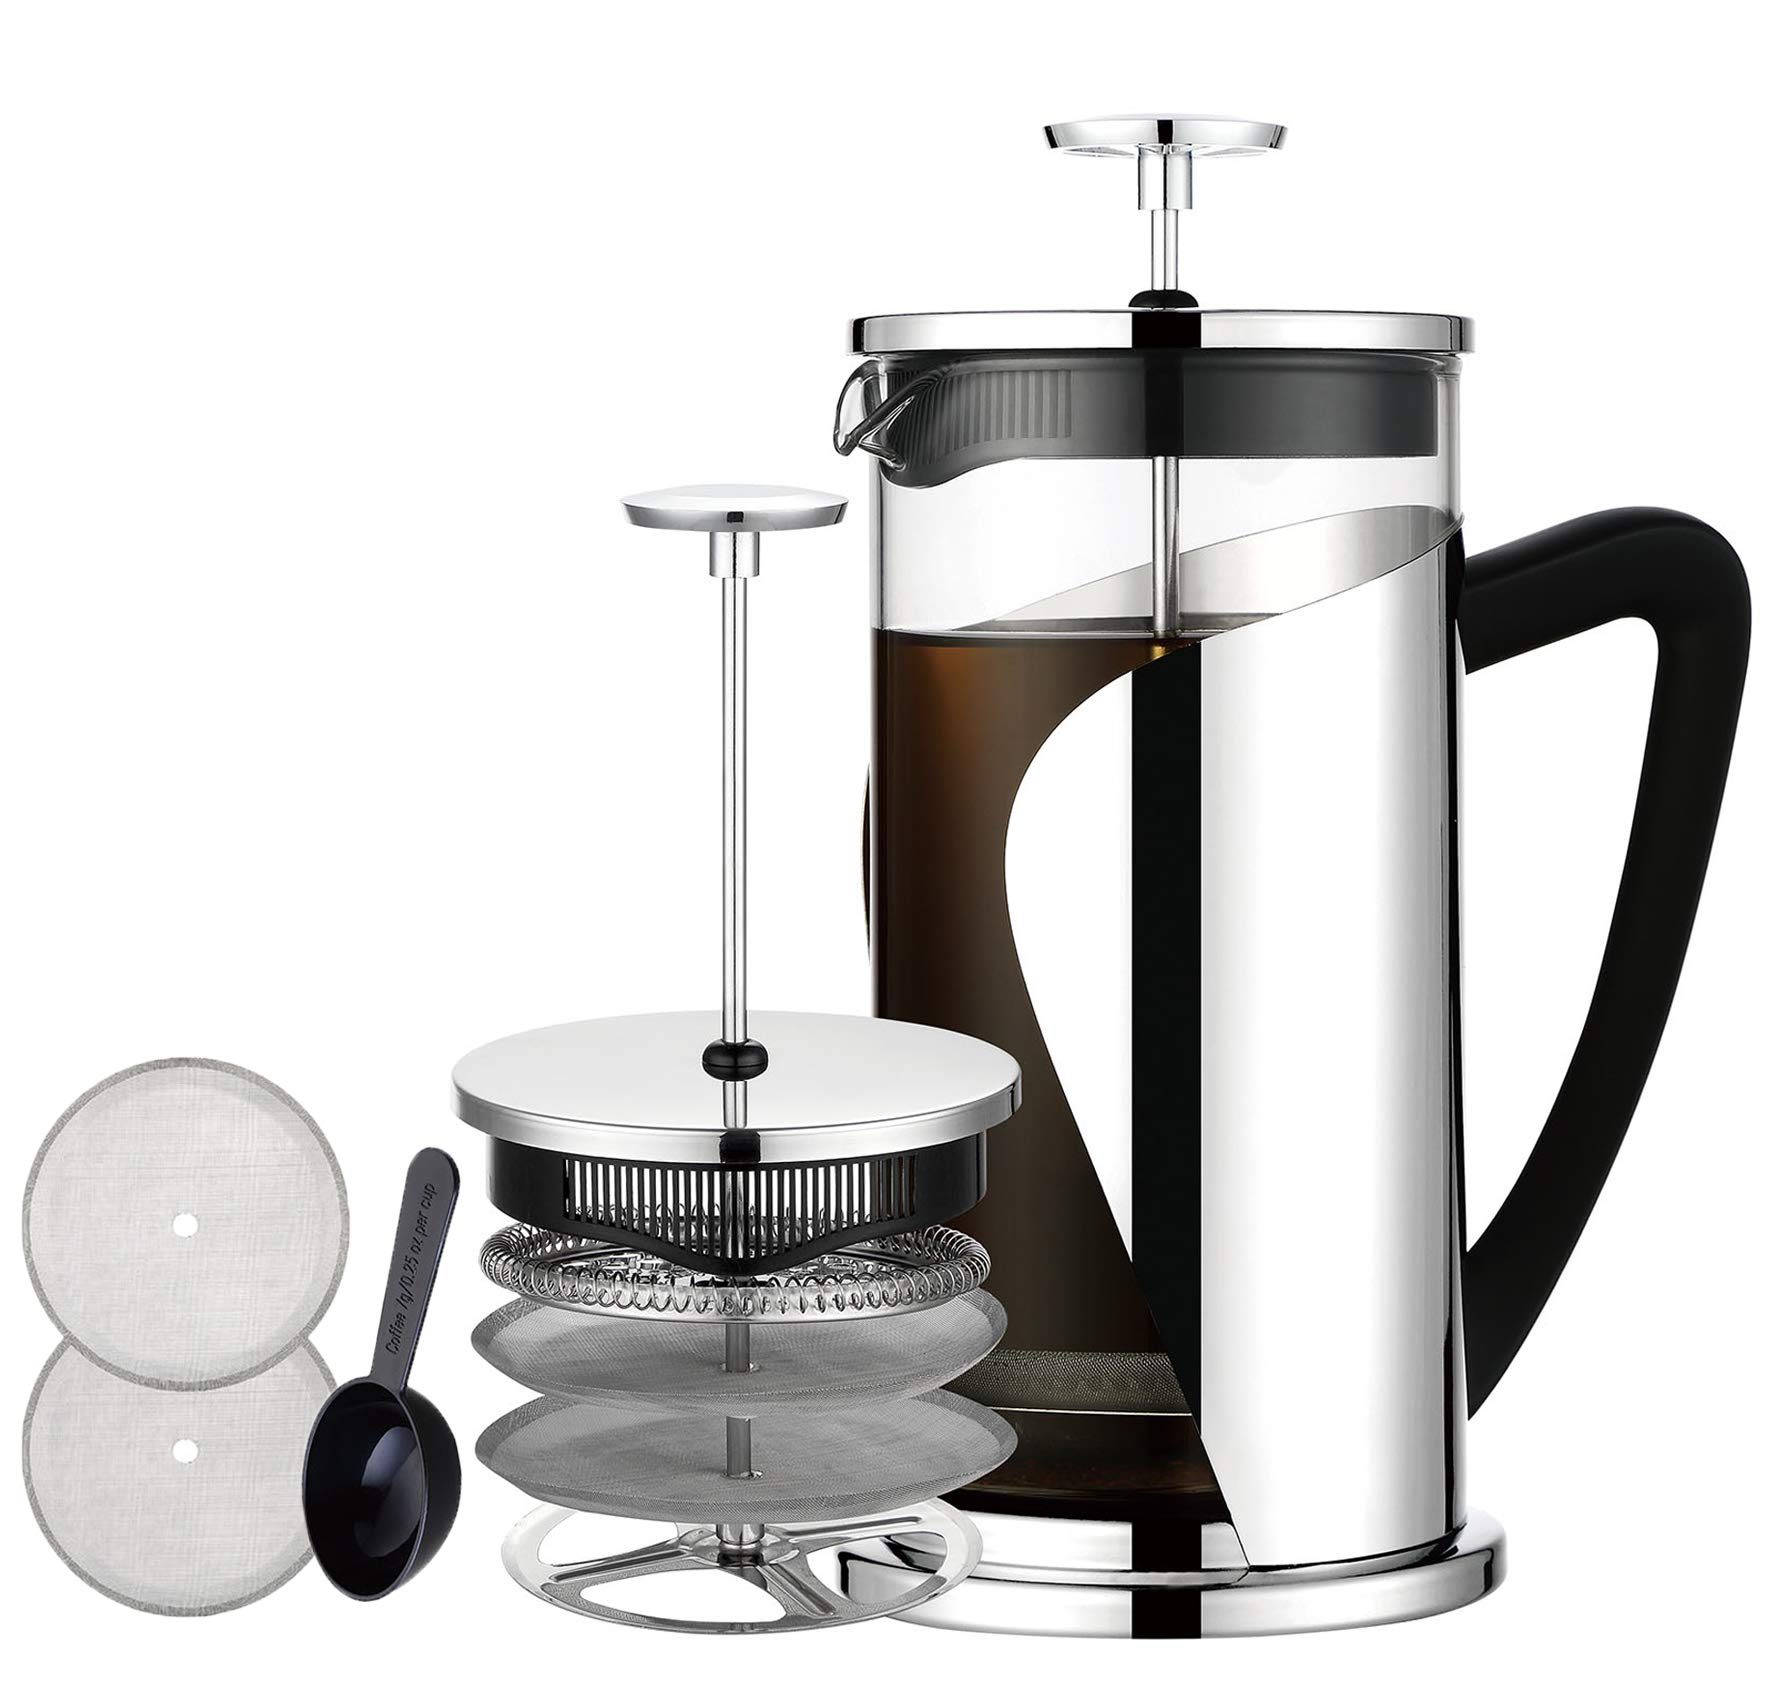 French Coffee Press, Bebeke Glass French Press Coffee Tea Maker| 8 cup, 34 oz |304 Stainless Steel Coffee Press Pot with 4 Filter Screens, Dishwasher Safe Easy Clean Heat Resistant Borosilicate Glass by Bebeke